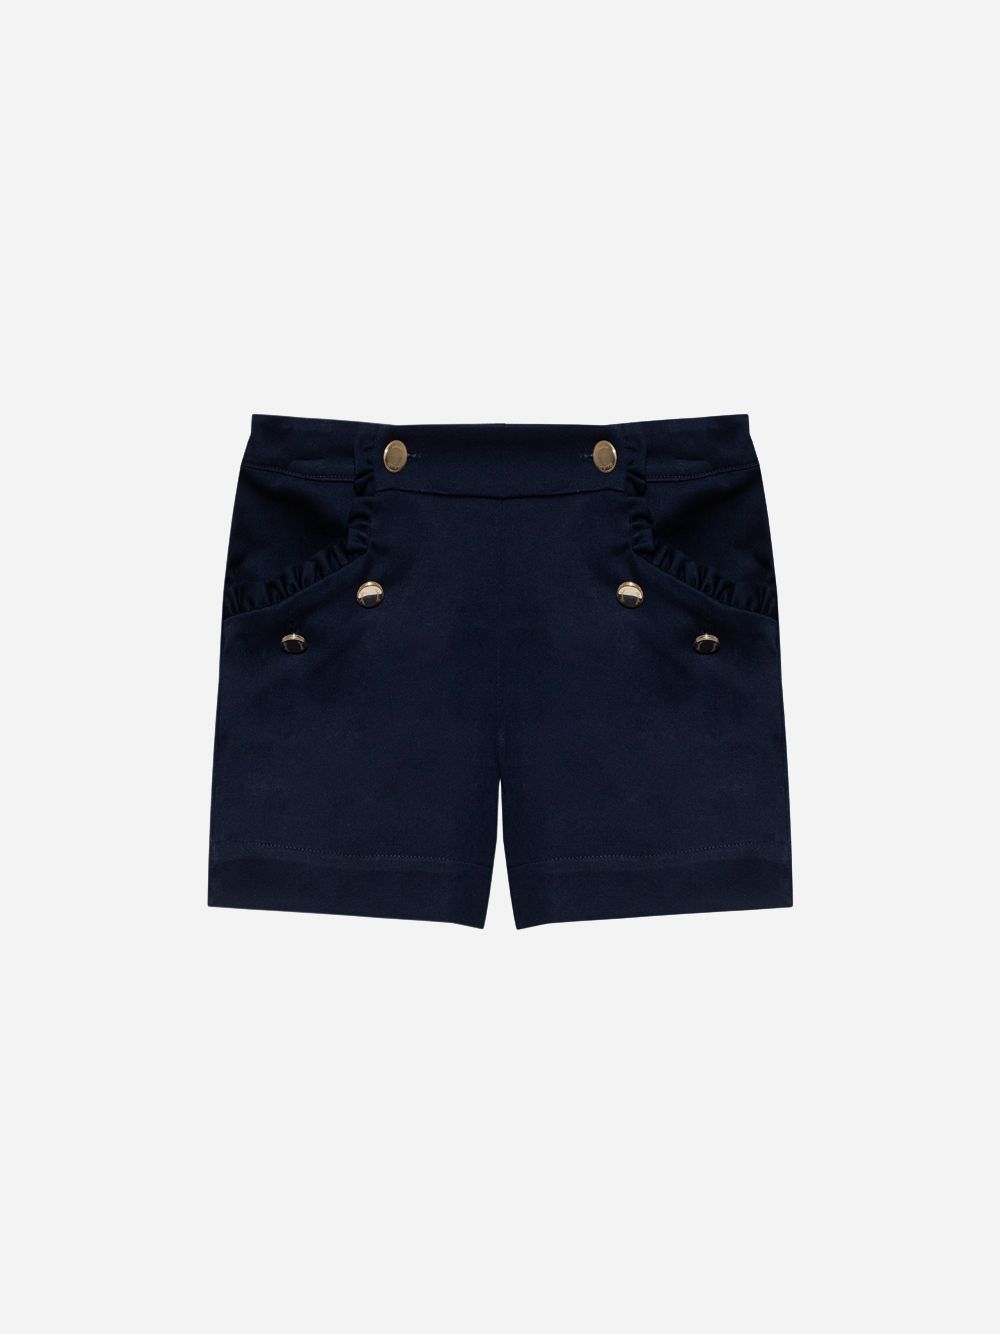 Patachou Cotton Sarga Navy Shorts